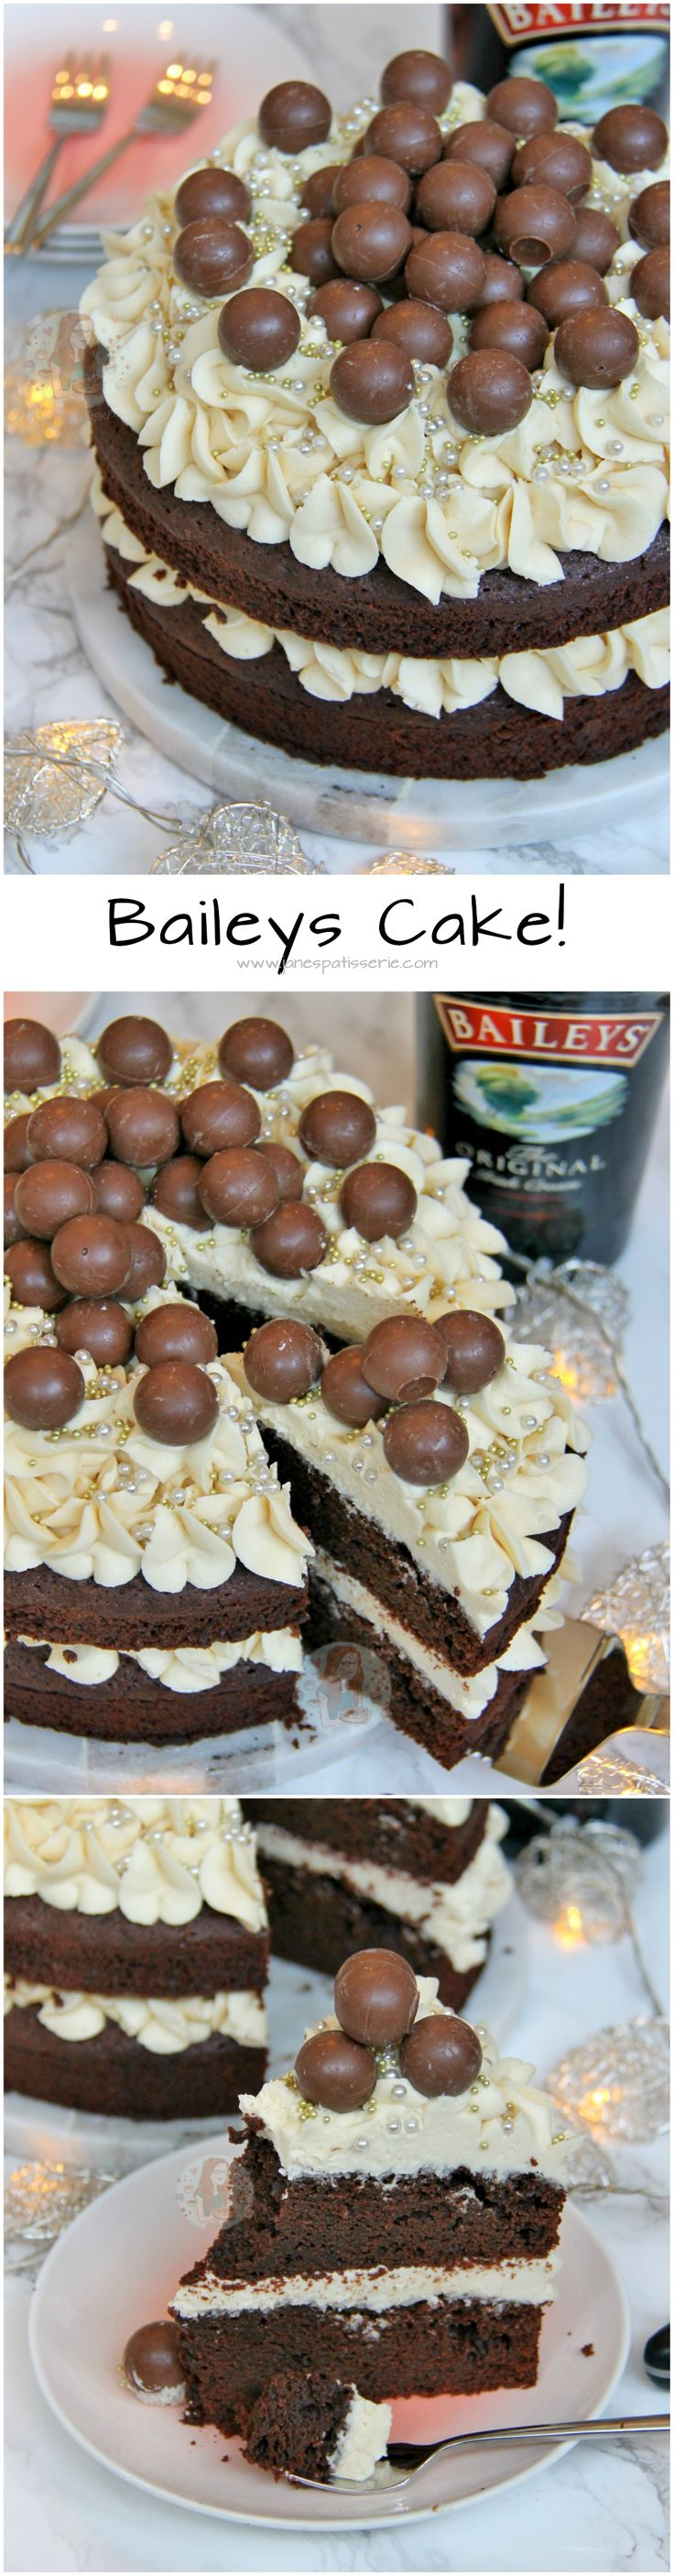 Baileys Cake!! A Two-Layer Chocolate Fudge Cake with Baileys Buttercream, and Baileys Truffles. The MOST Delicious Baileys Cake Ever!